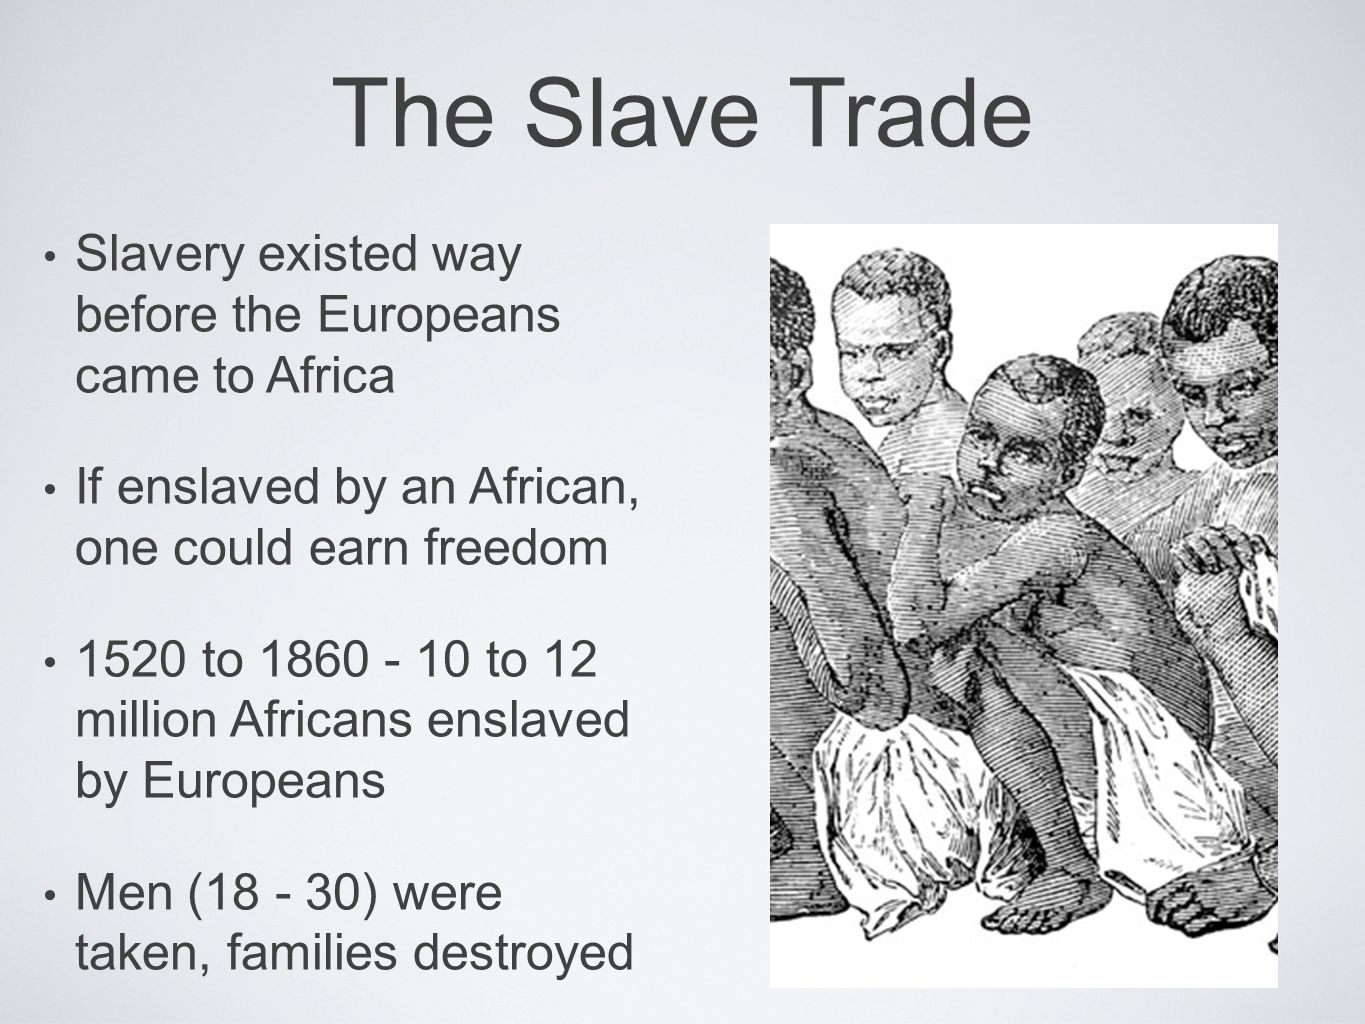 Essay: The Slave Trade and its Effects on Early America